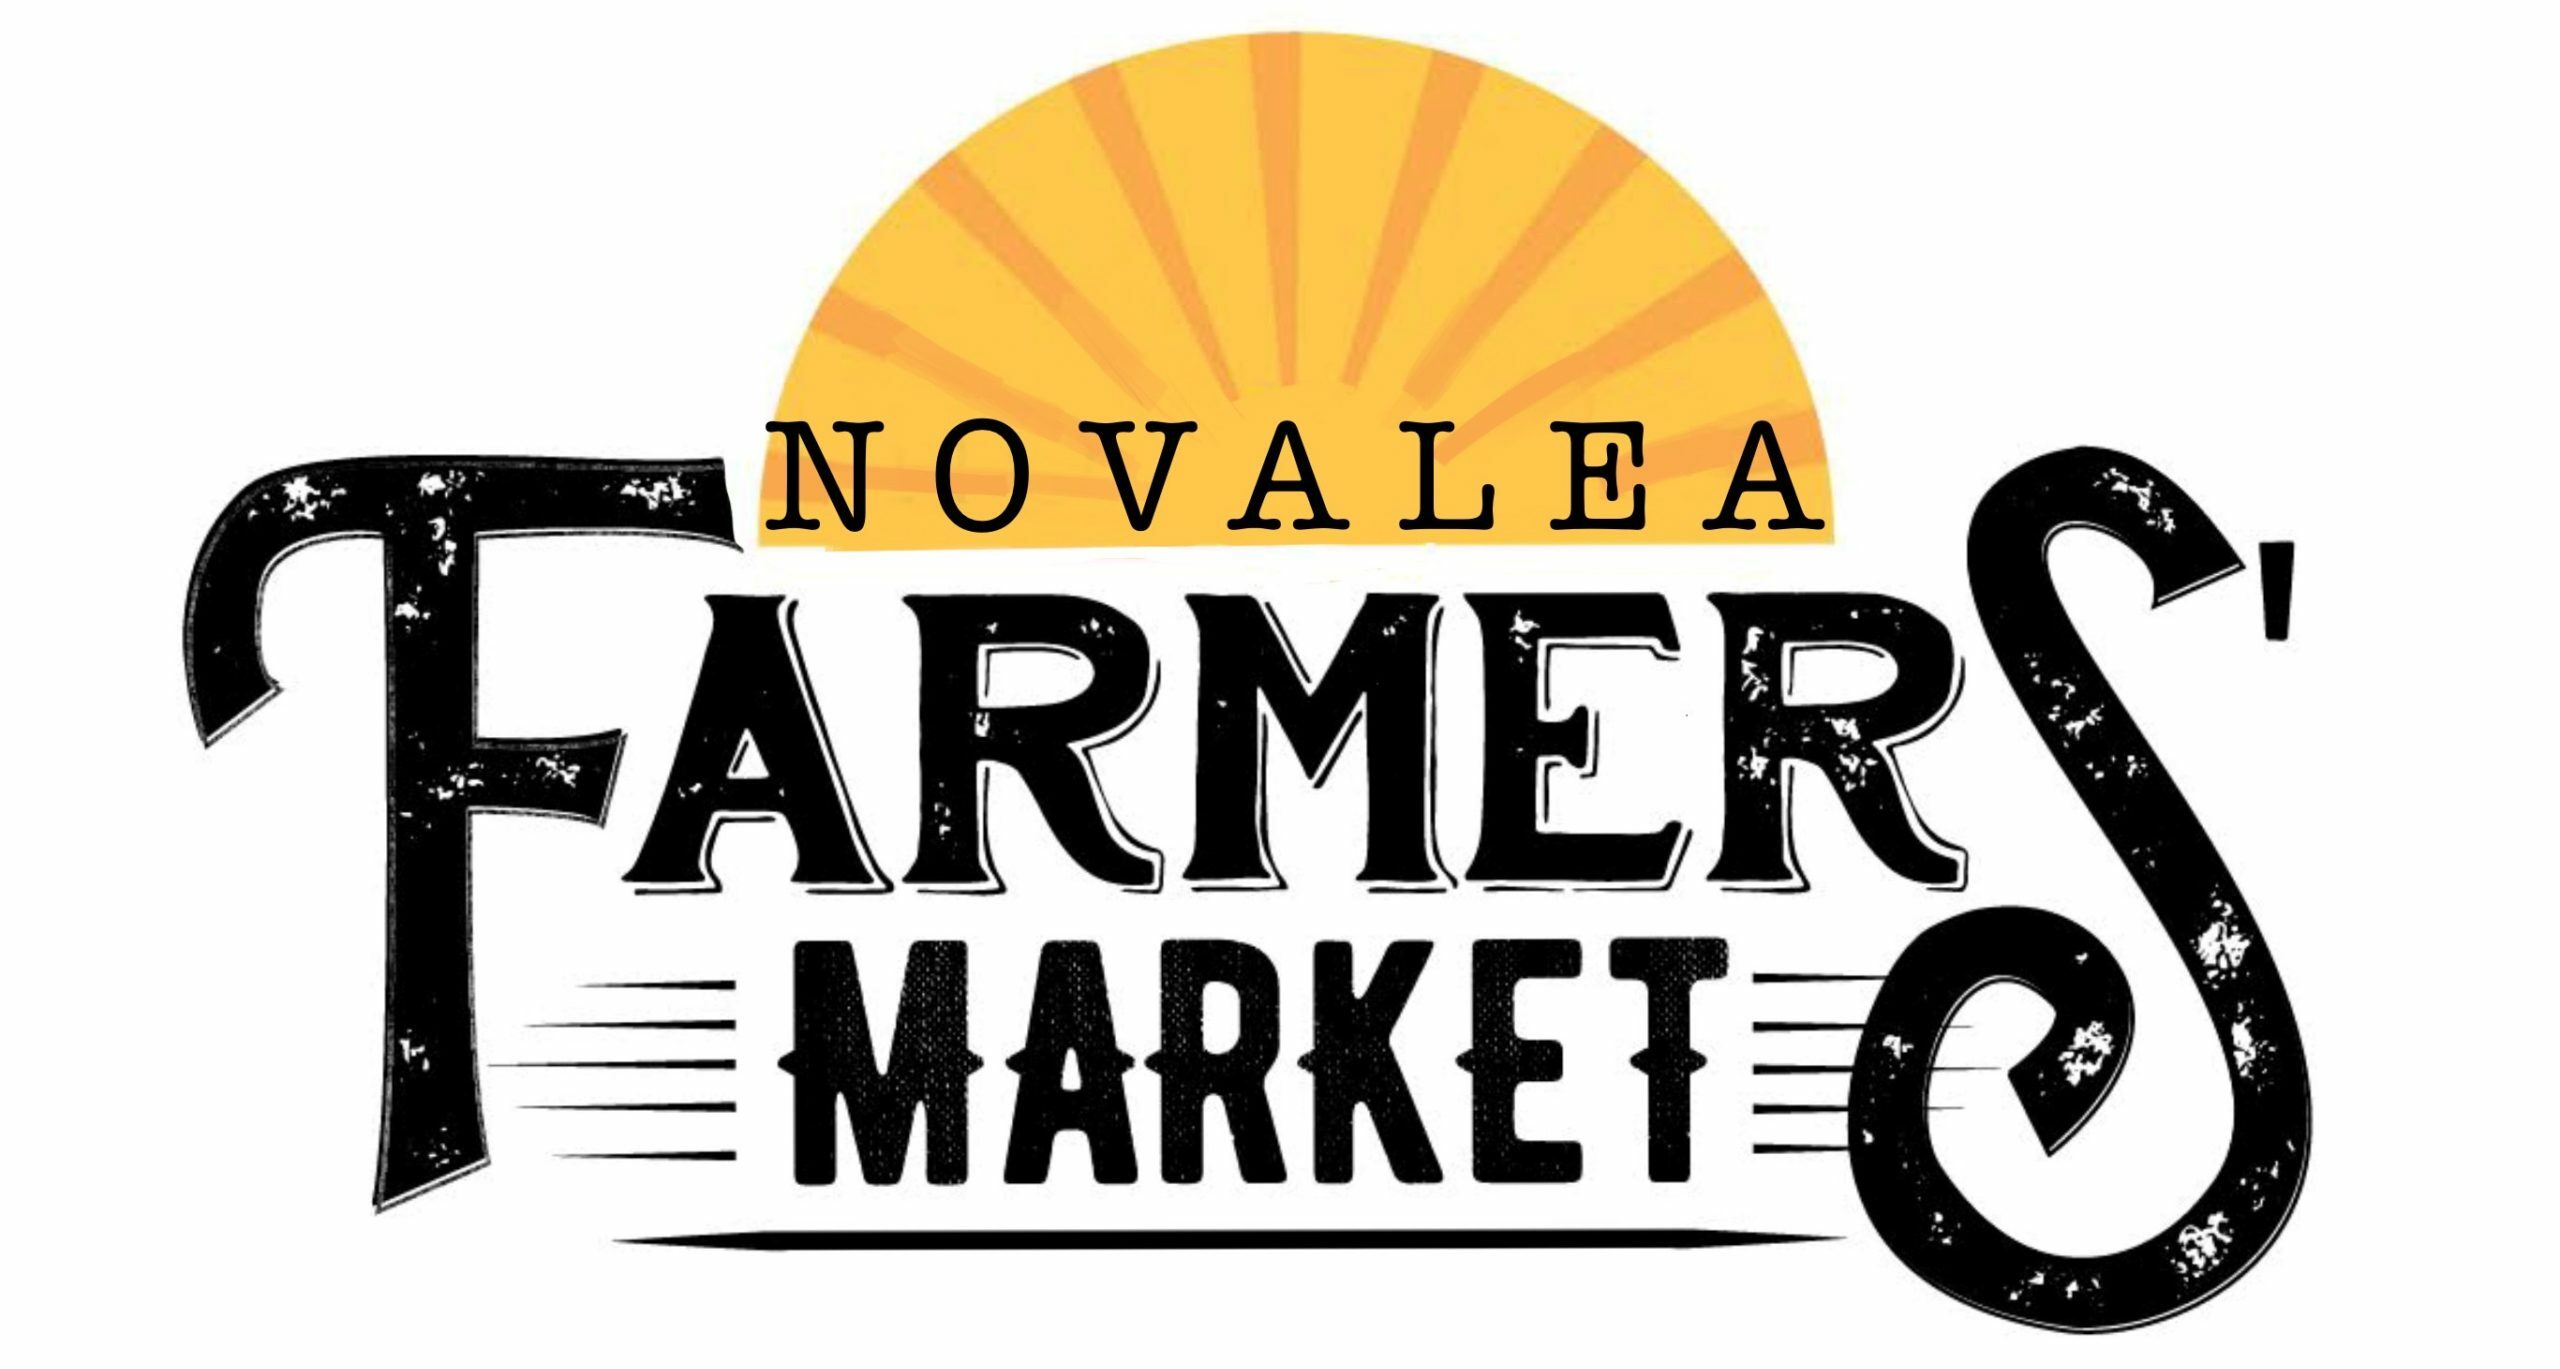 The Novalea Farmers' Market